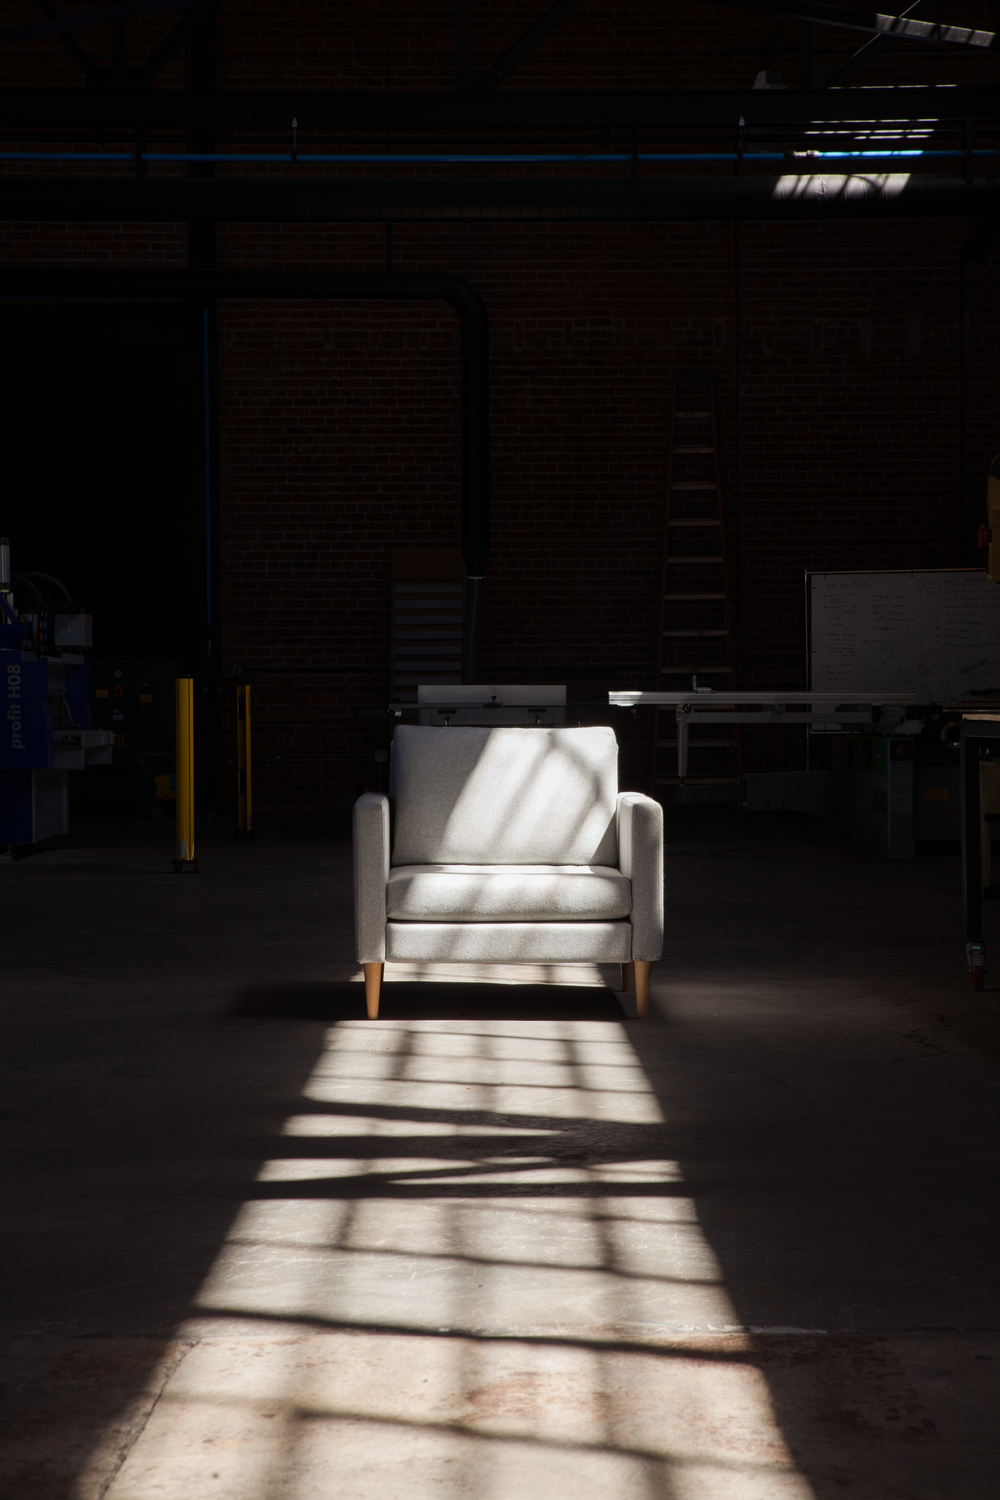 chair in the shadows 2 (1 of 1) (1 of 1).jpg